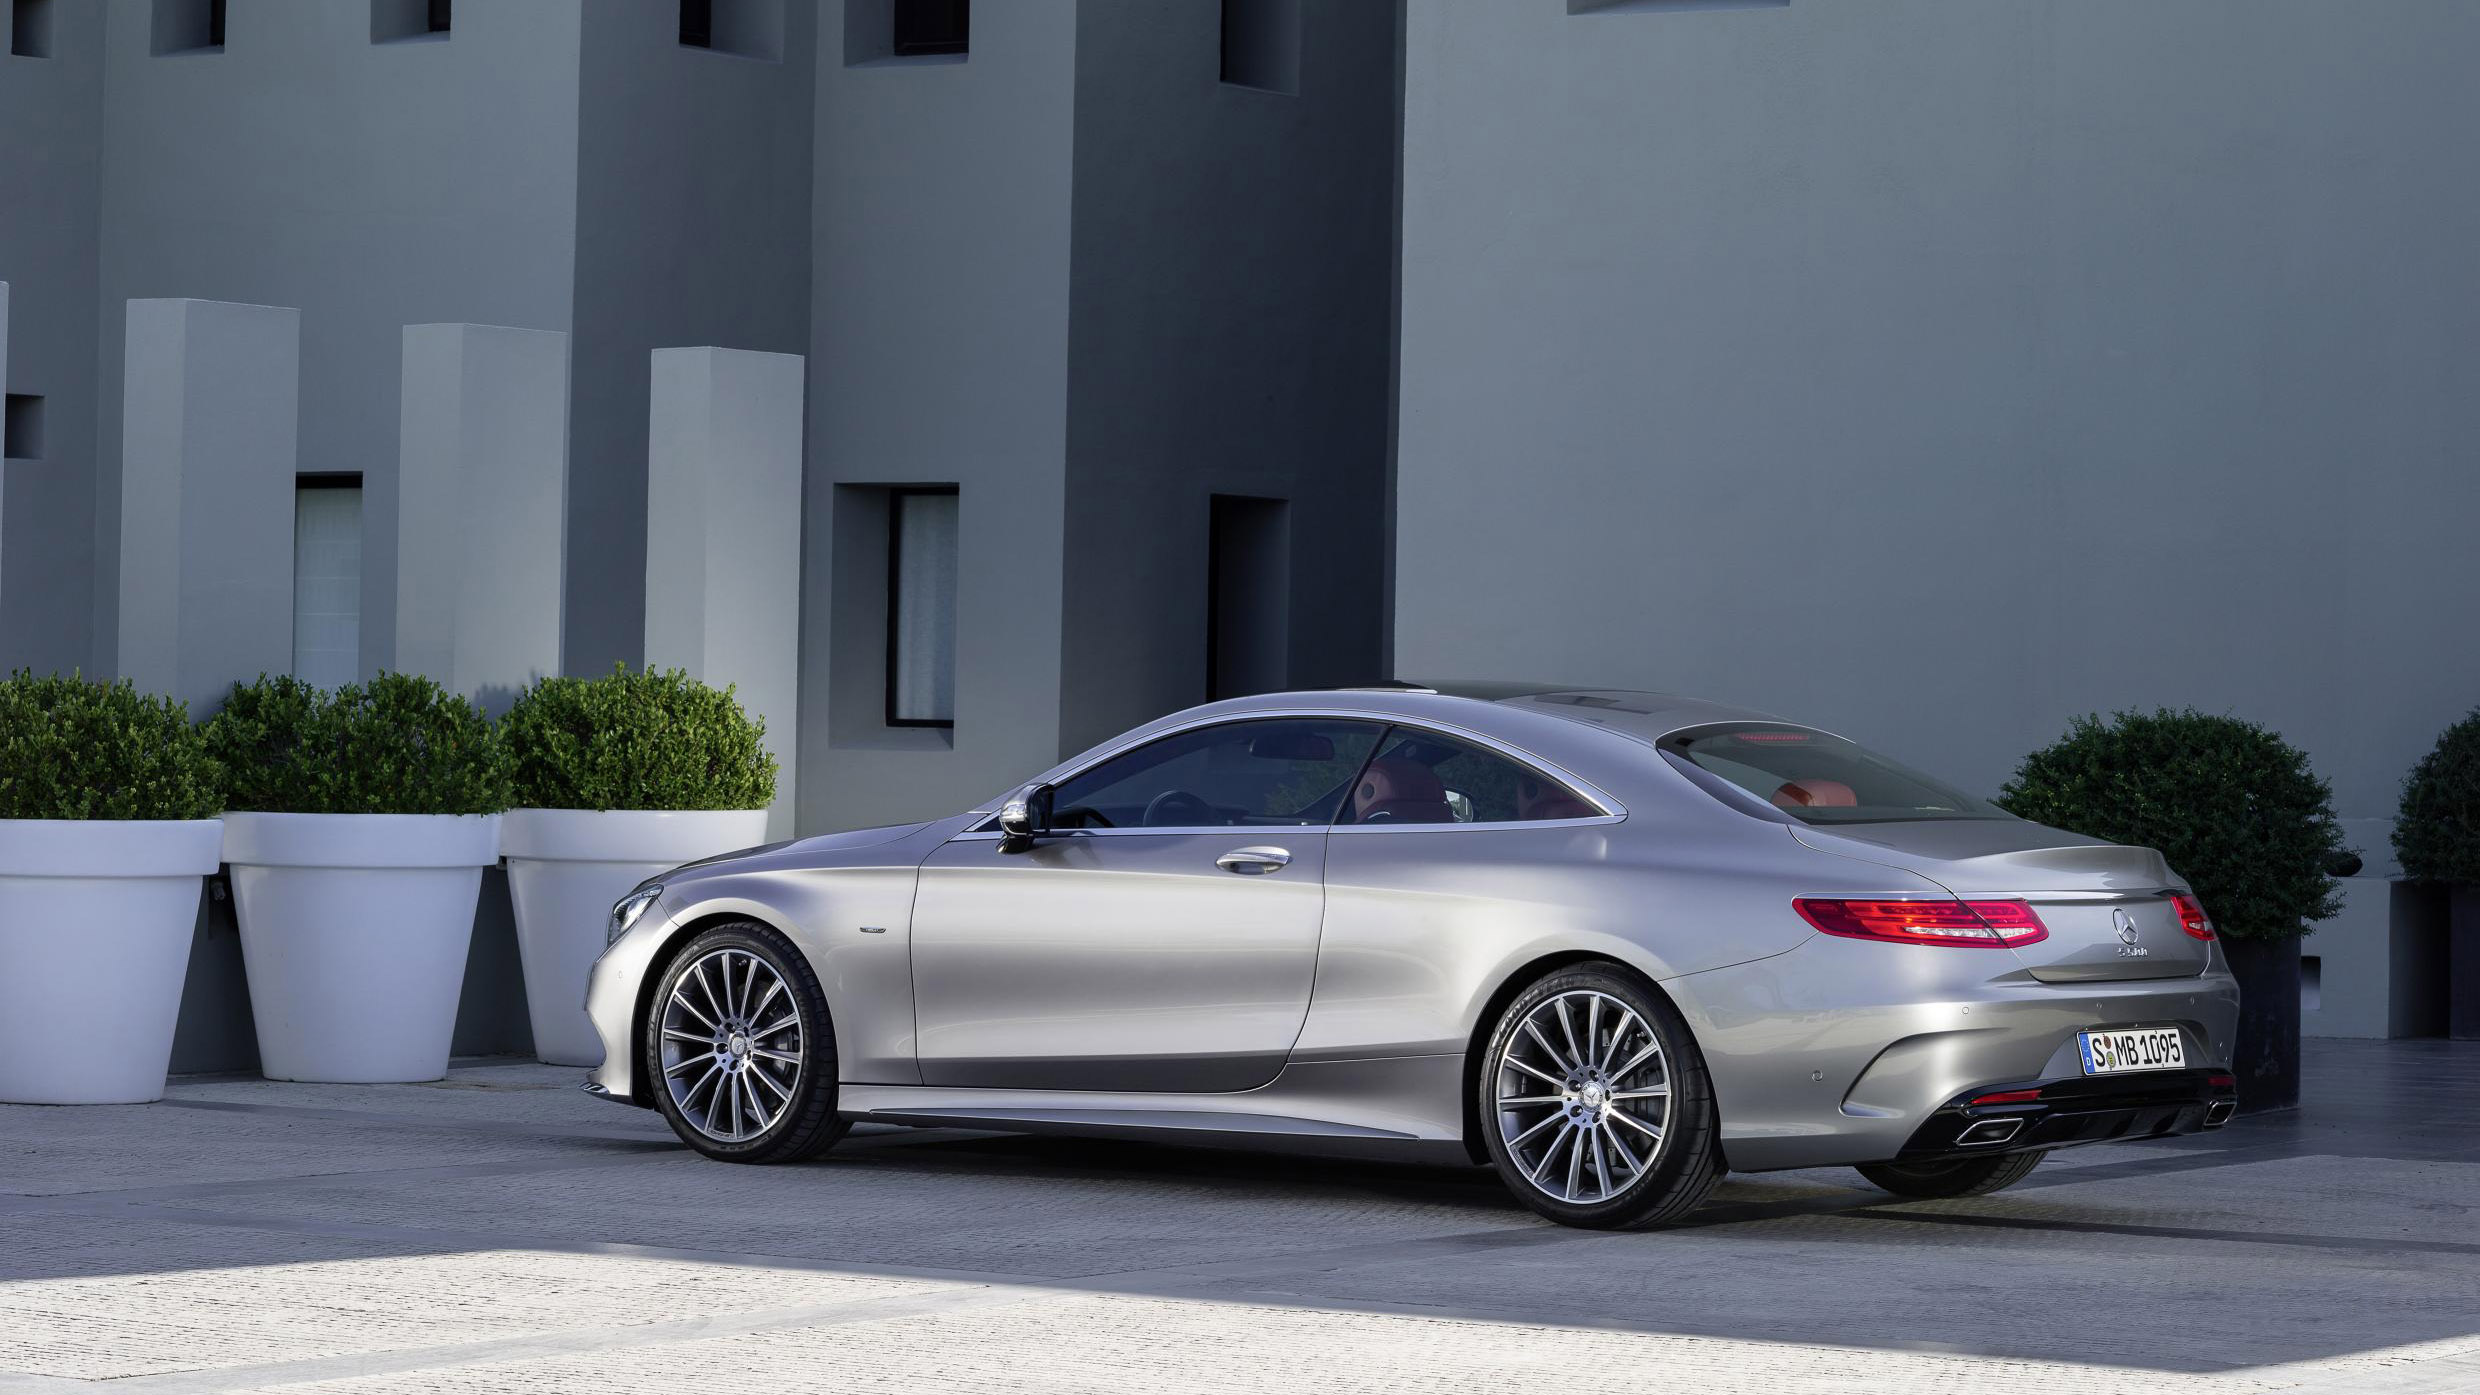 mb-s-class-coupe-2015